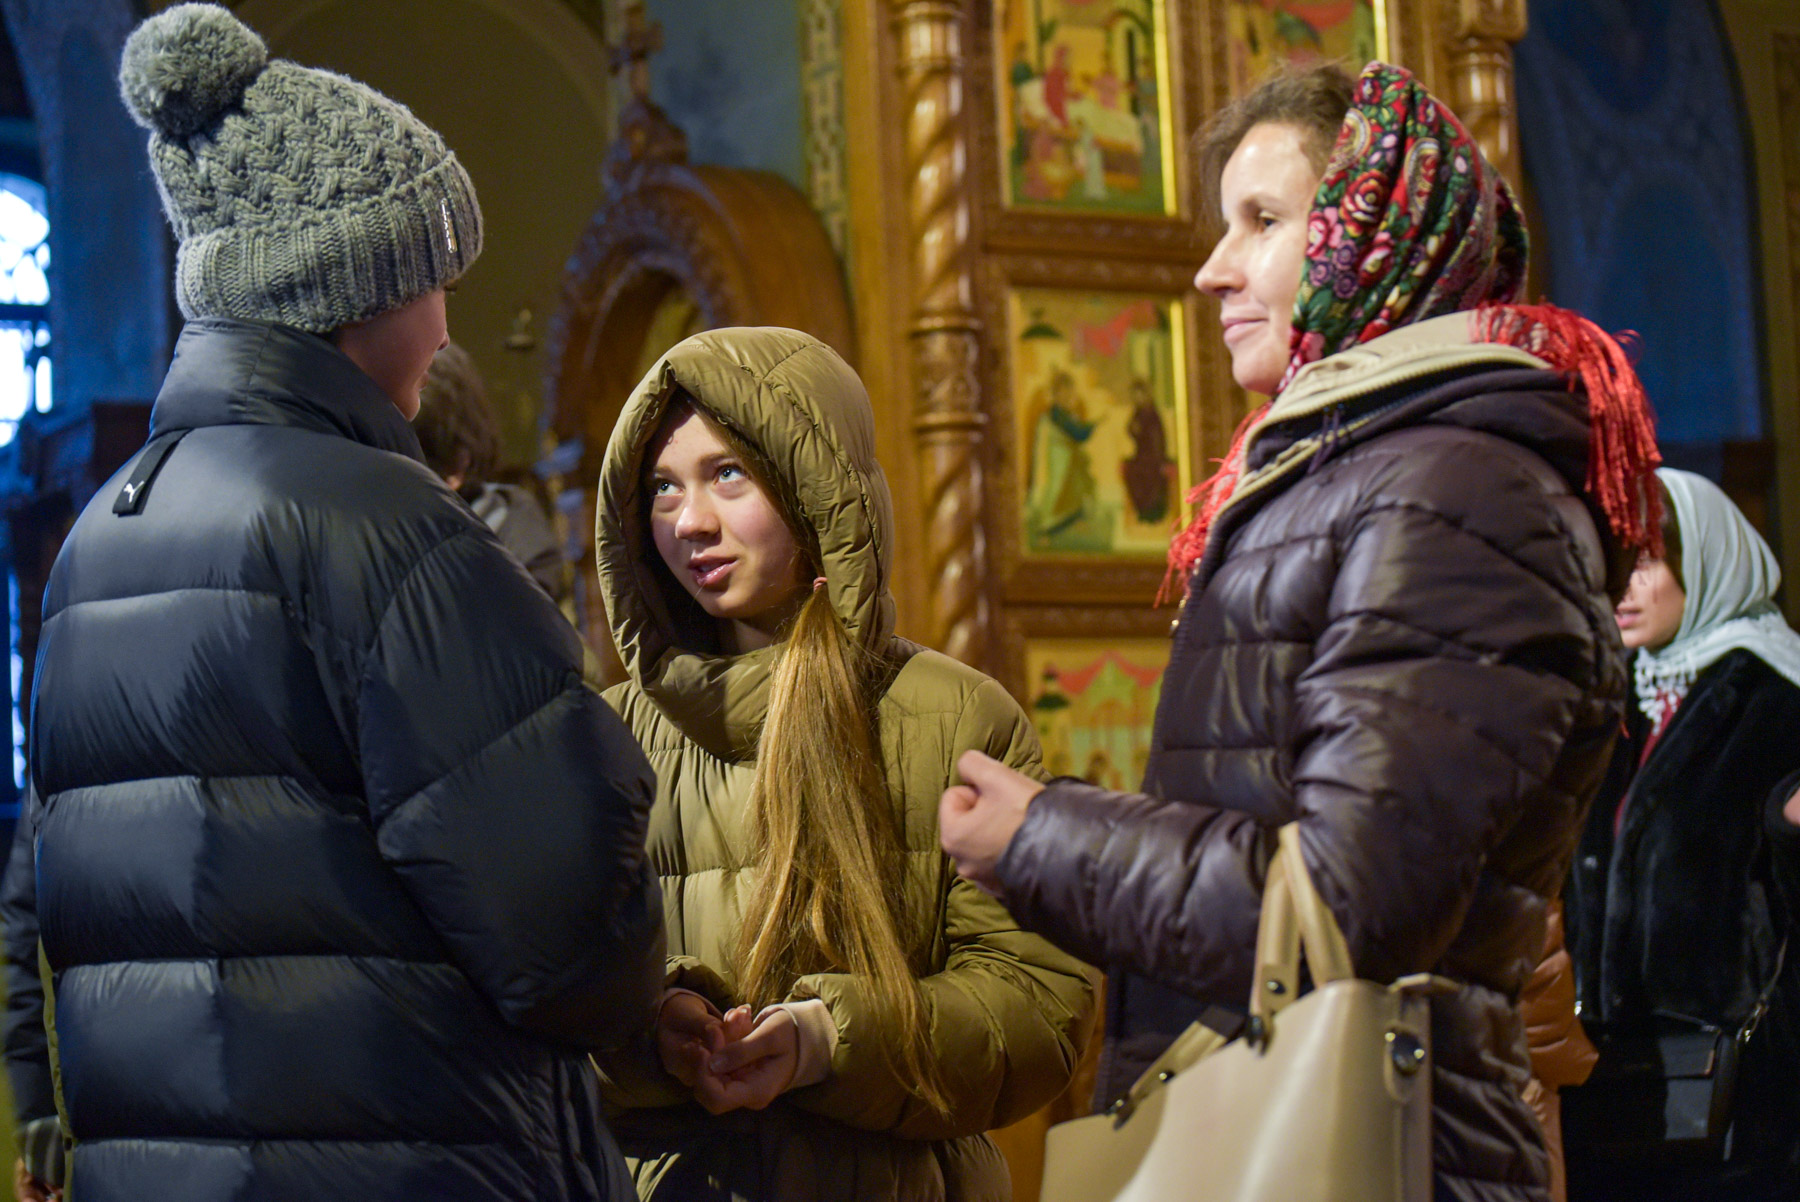 photos of orthodox christmas 0233 1